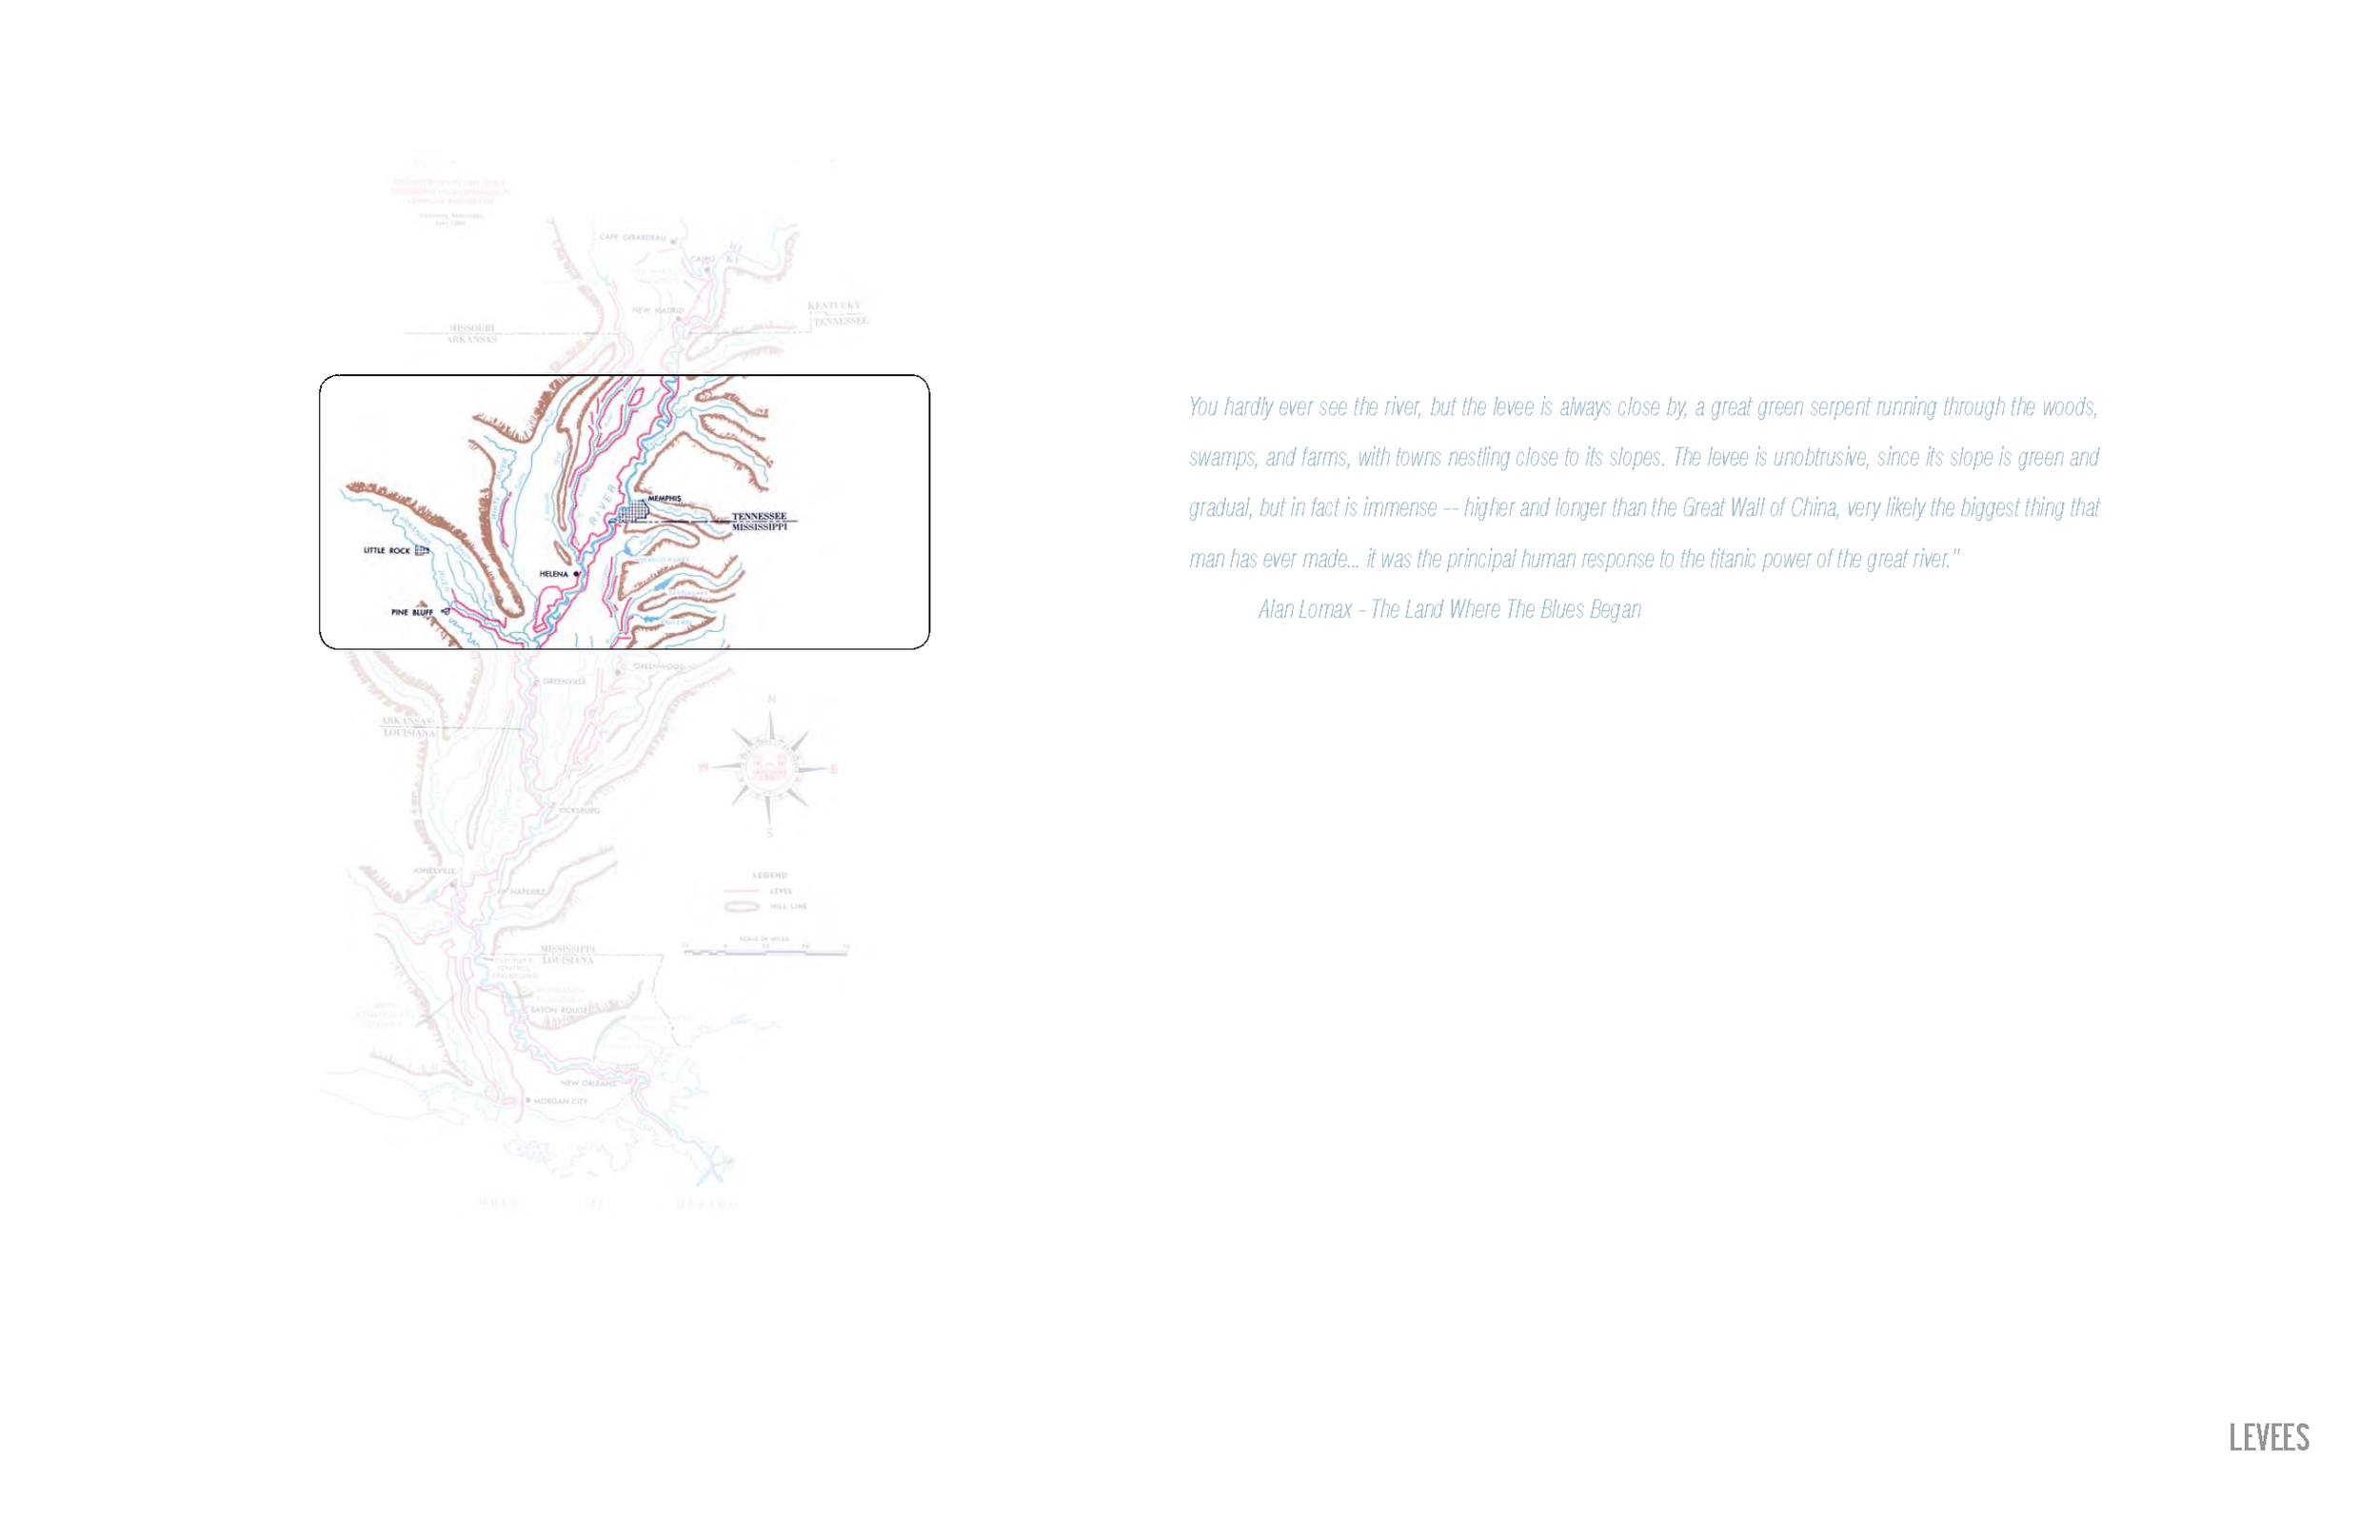 72_DEEP SURFACE engaging the terra viscus DESIGN_Page_04.png